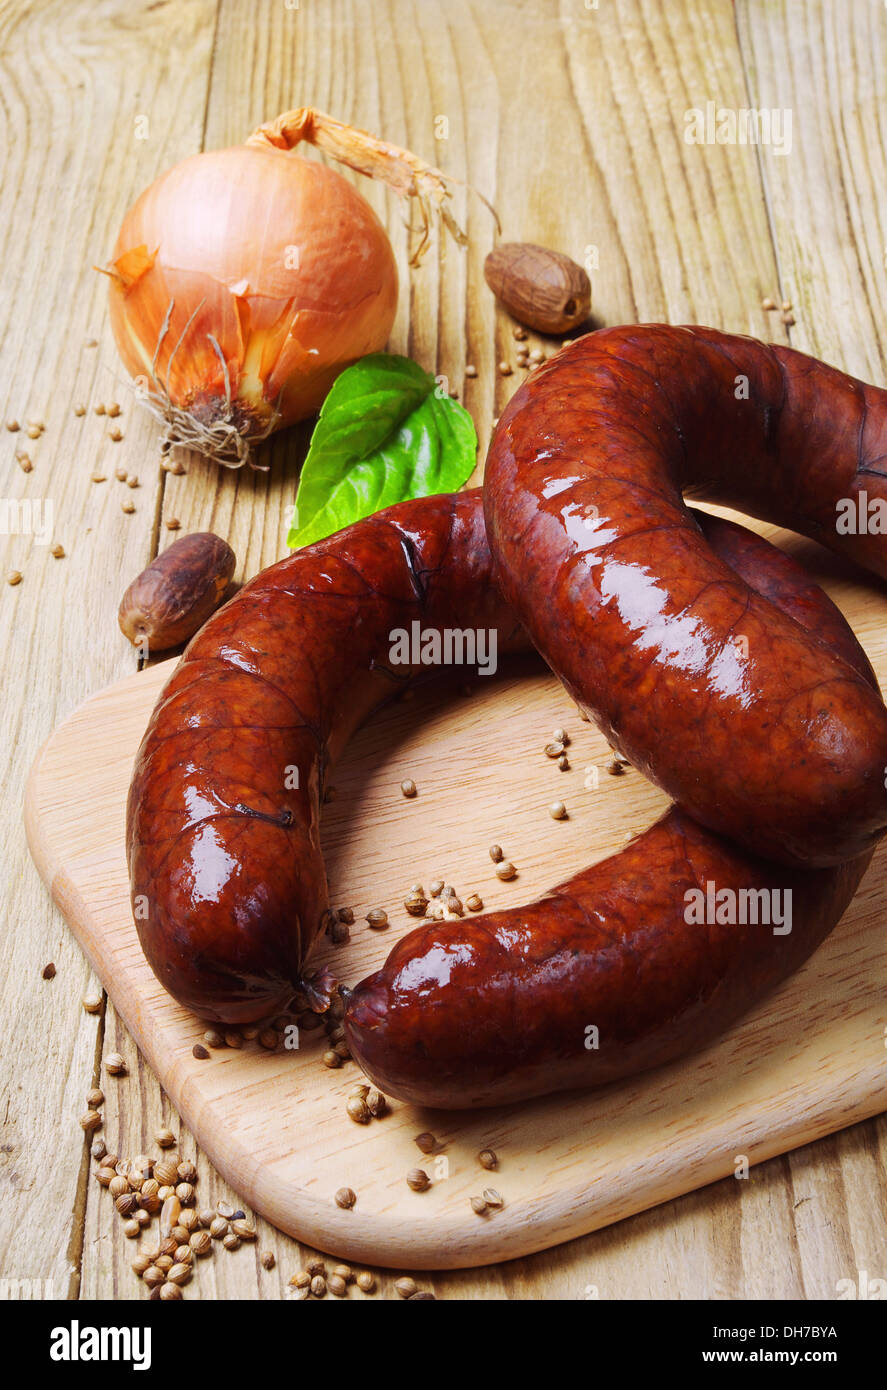 Homemade smoked sausage and onion on a cutting board Stock Photo